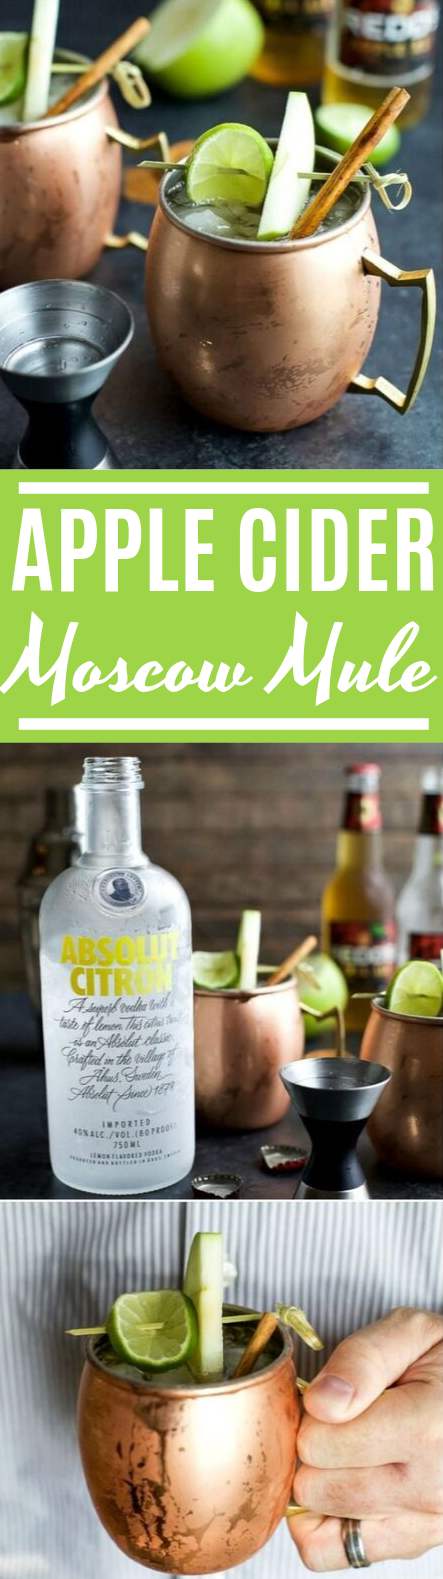 Apple Cider Moscow Mules #drinks #alcohol